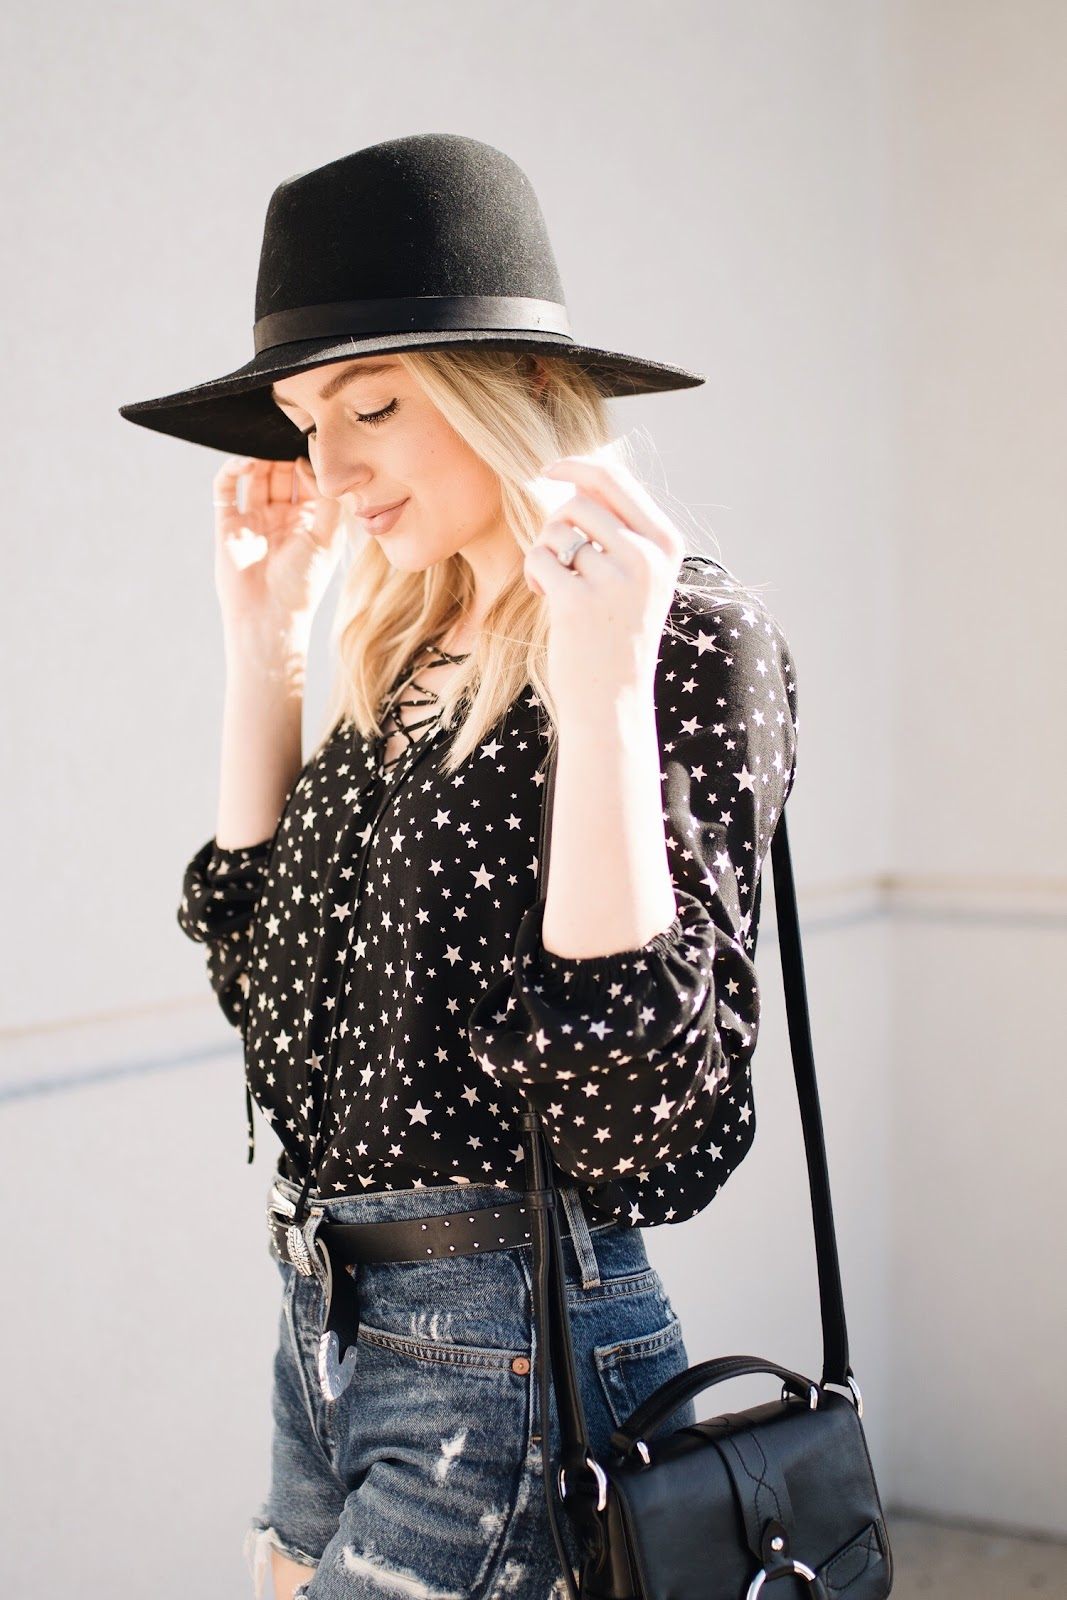 star print top with a wool hat